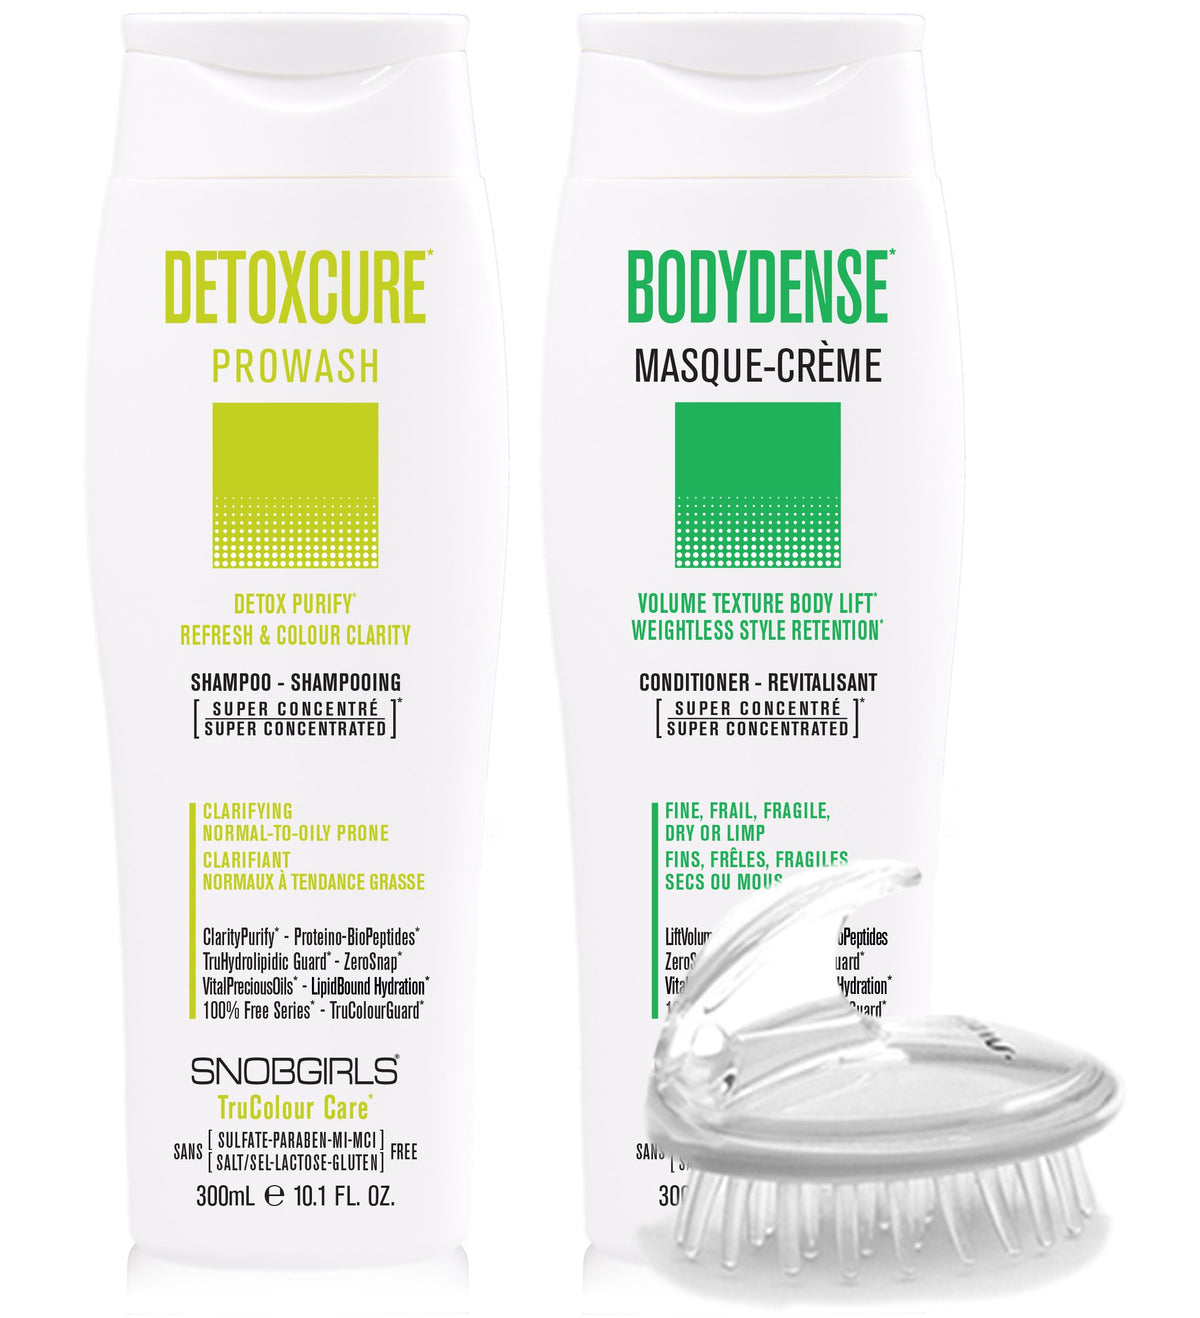 DUO DETOXCURE Prowash + BODYDENSE Masque-Creme 300 mL + Shampoo Brush - SNOBGIRLS Canada